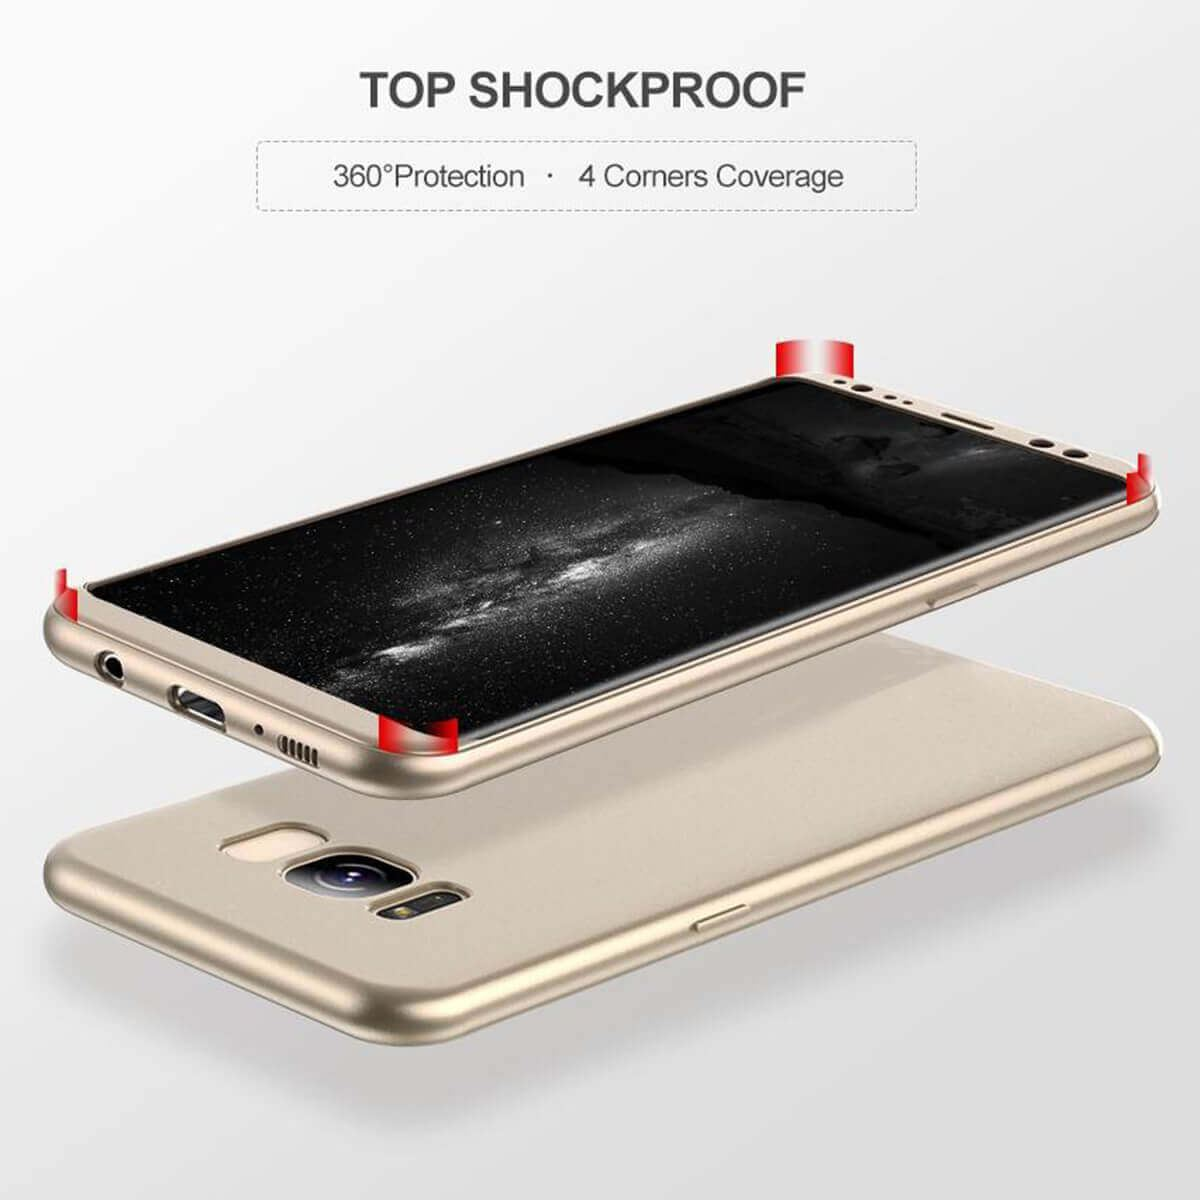 New-ShockProof-Hybrid-360-TPU-Thin-Case-Cover-For-Samsung-Galaxy-S7-edge-S8-S9 miniature 52